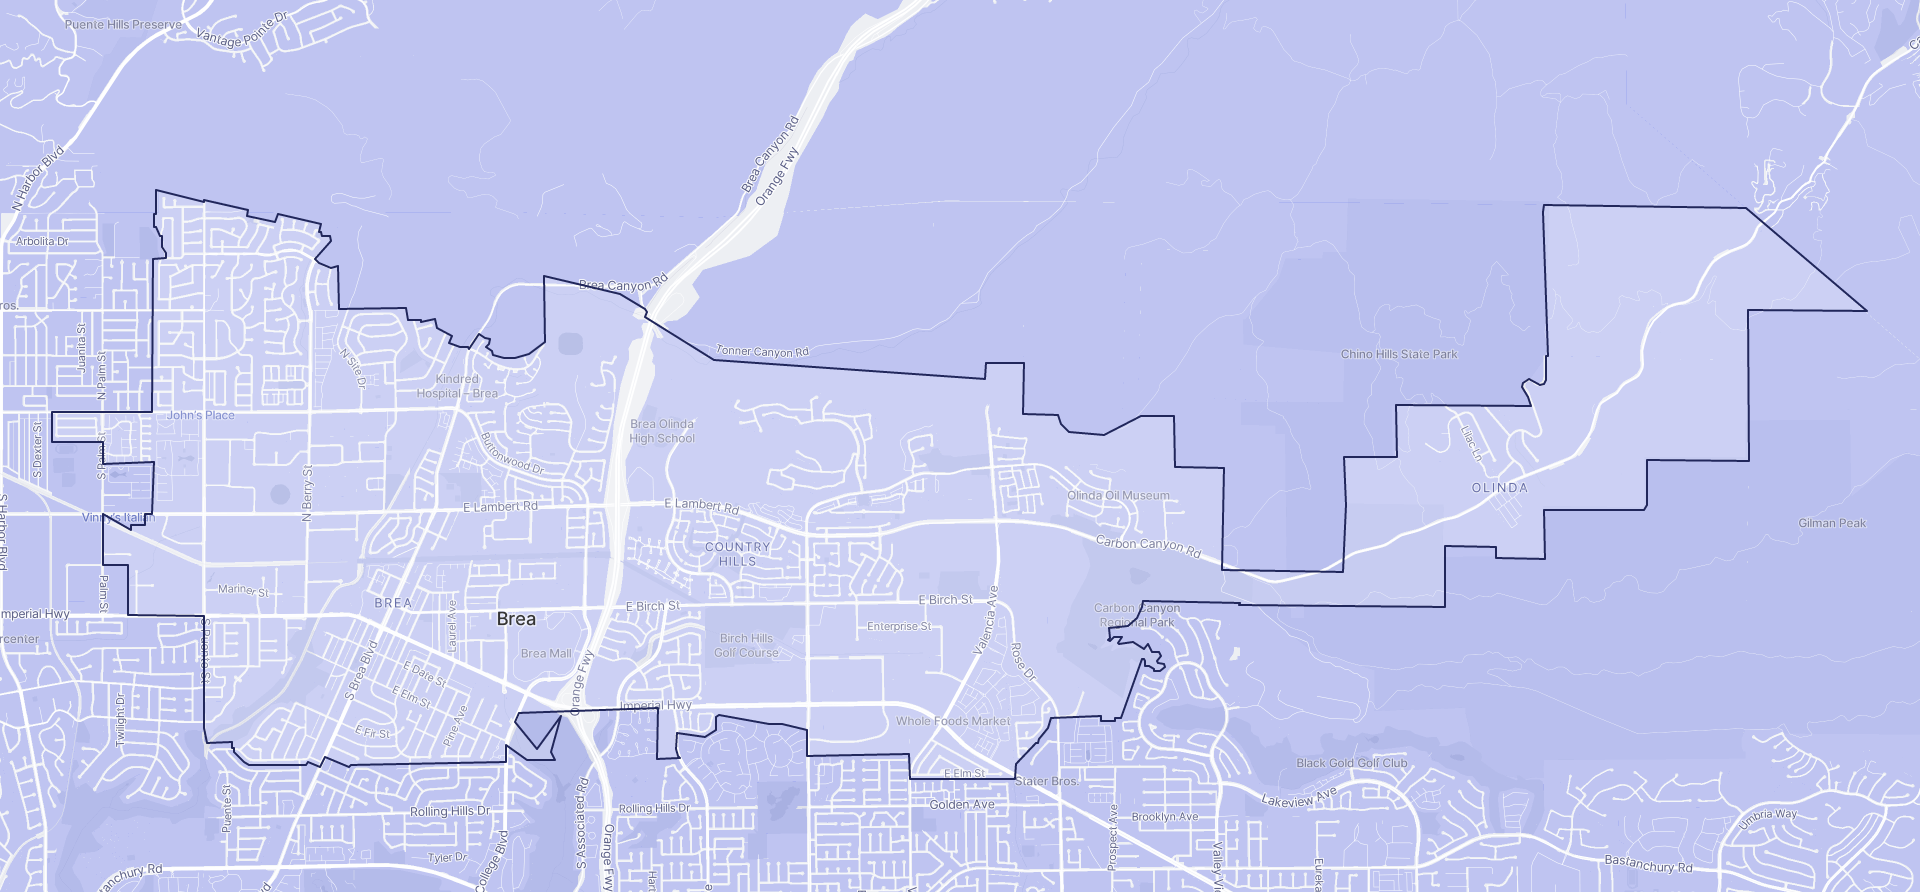 Image of Brea boundaries on a map.